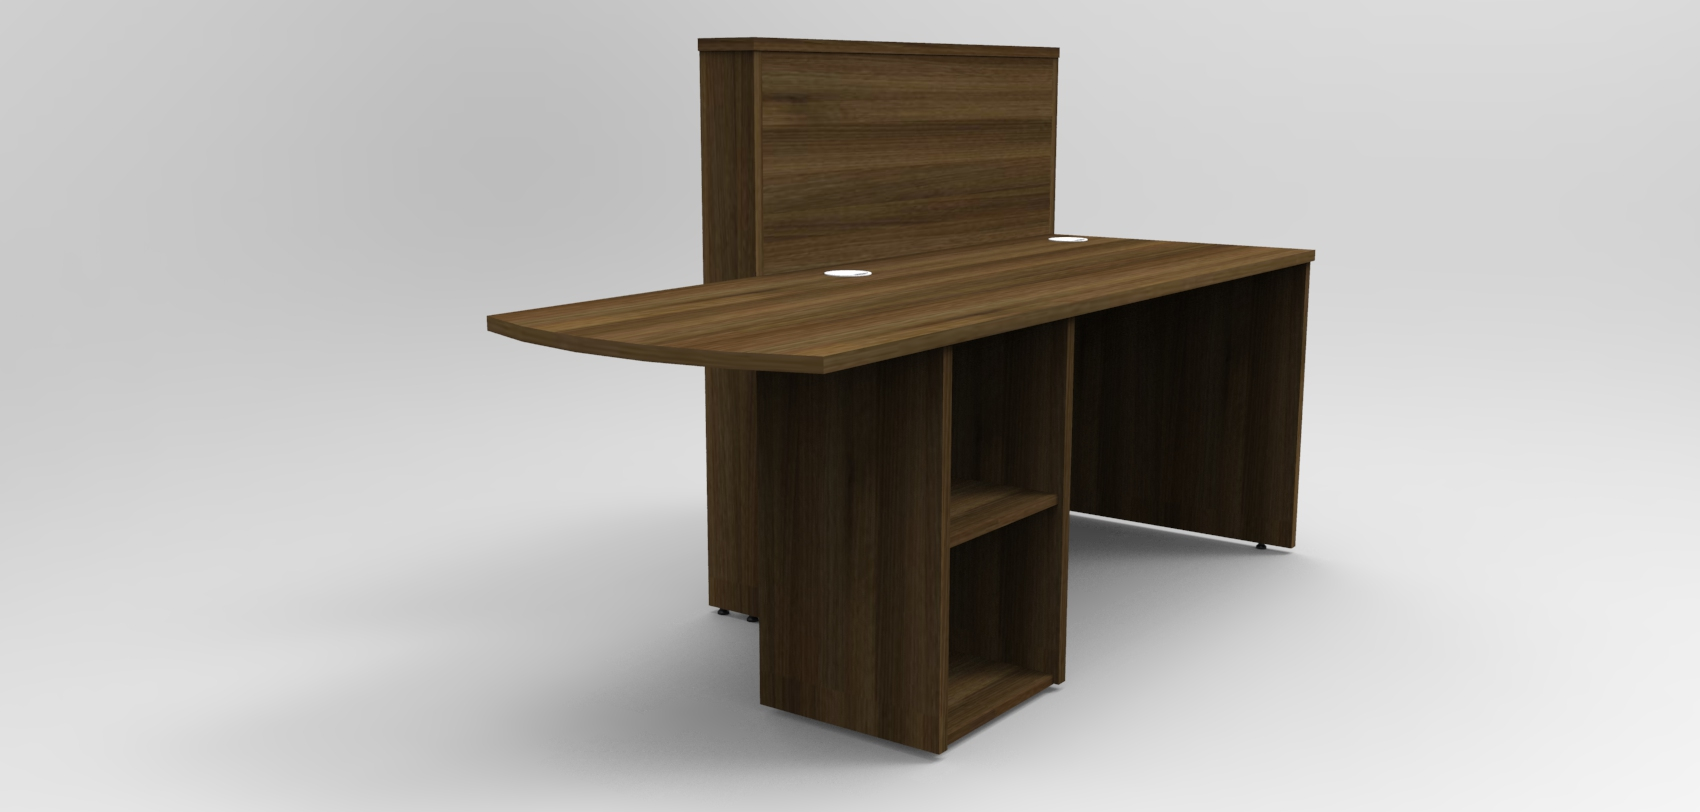 Image 3UA -Tall Union compact reception desk finished in Walnut rear view